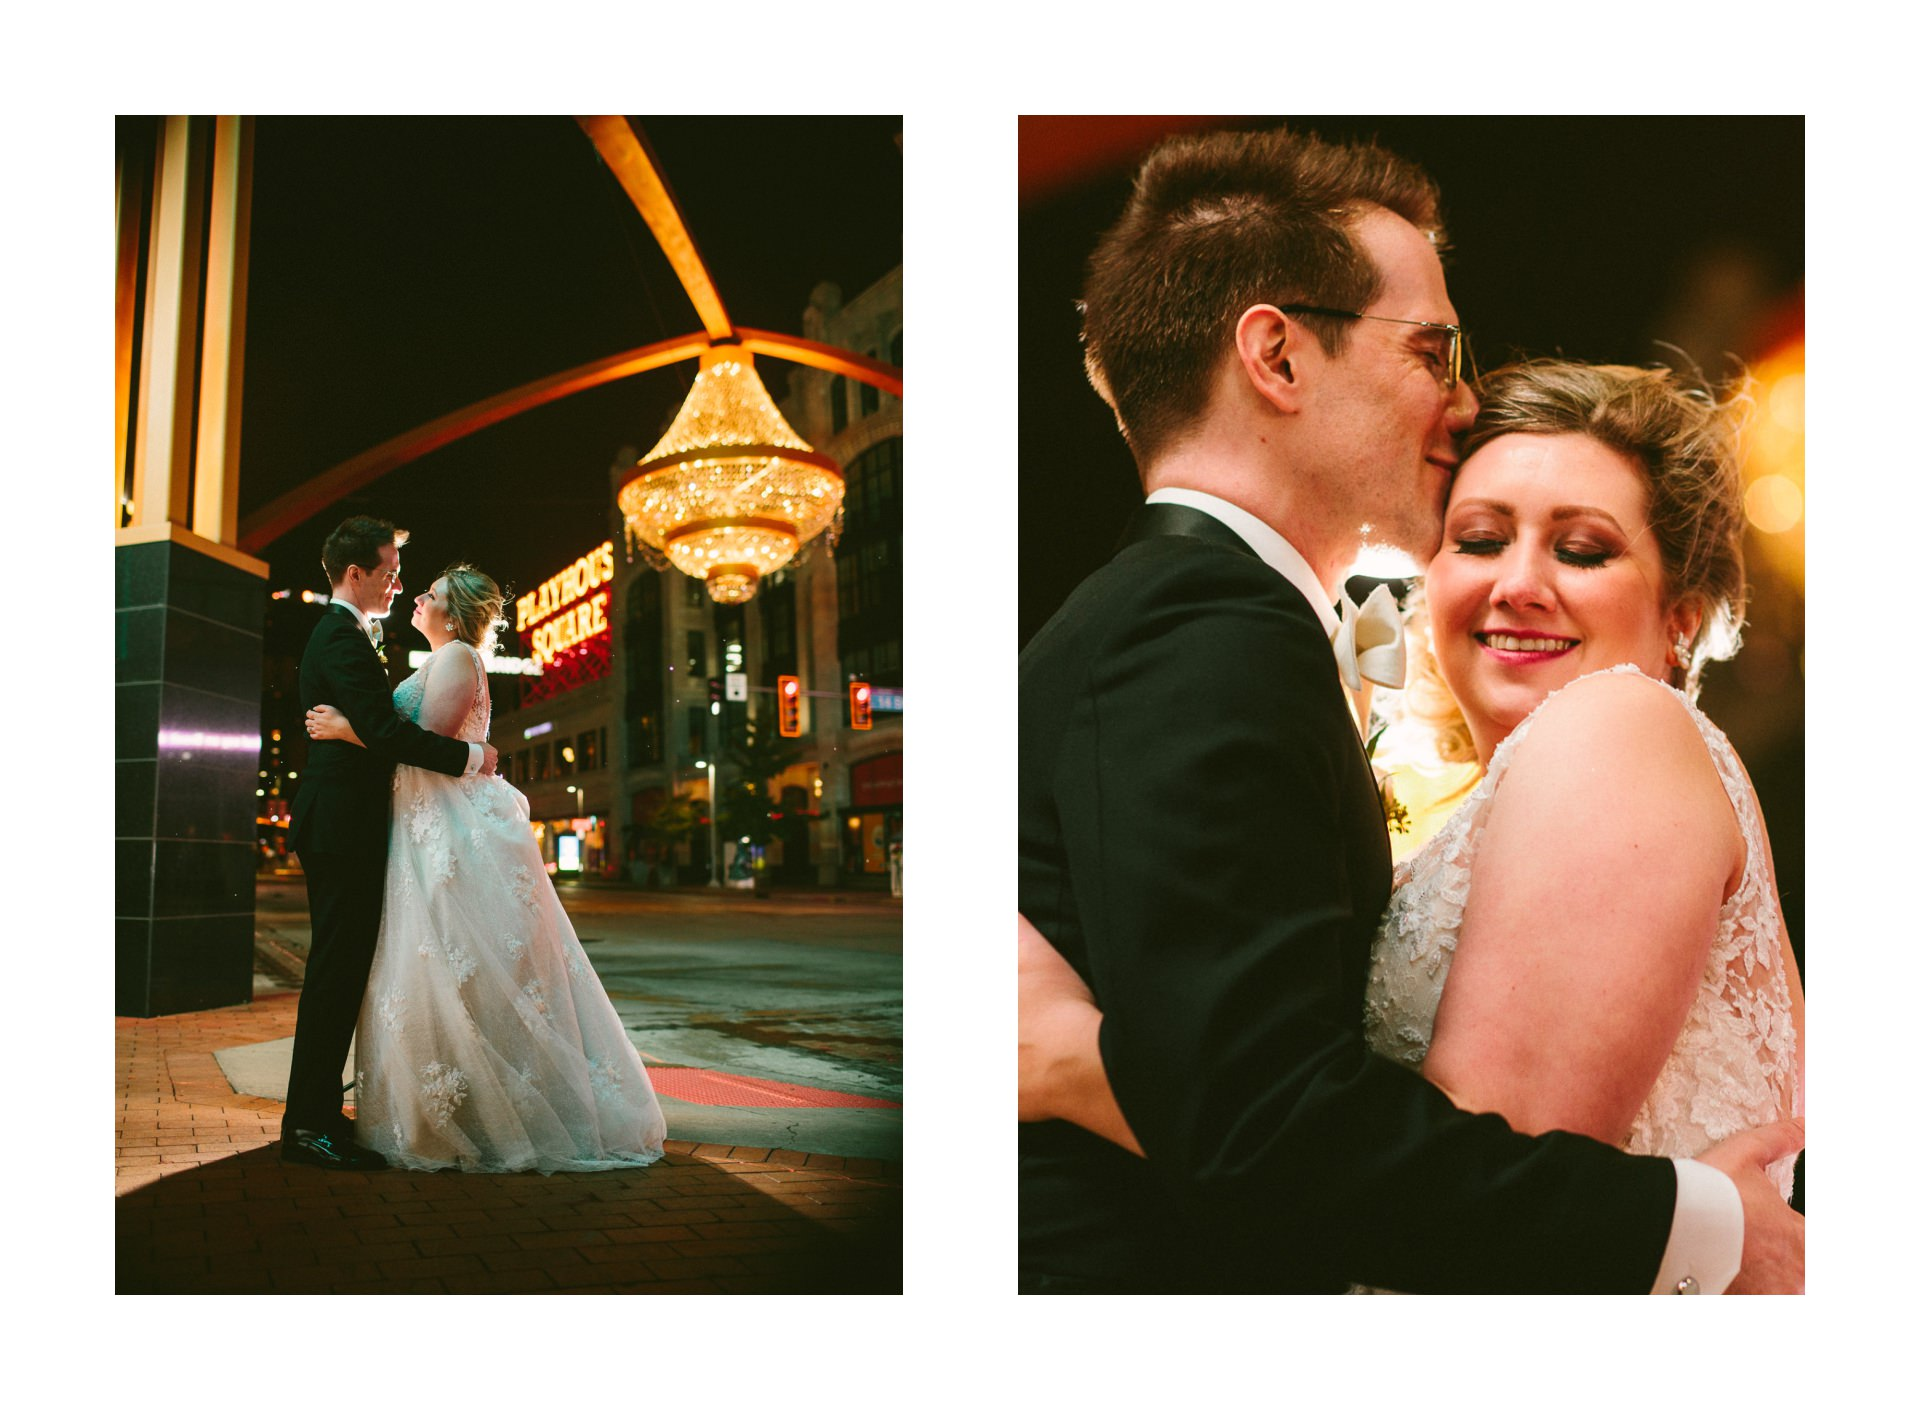 Cibreo Privato Wedding at Playhouse Square in Cleveland 2 34.jpg